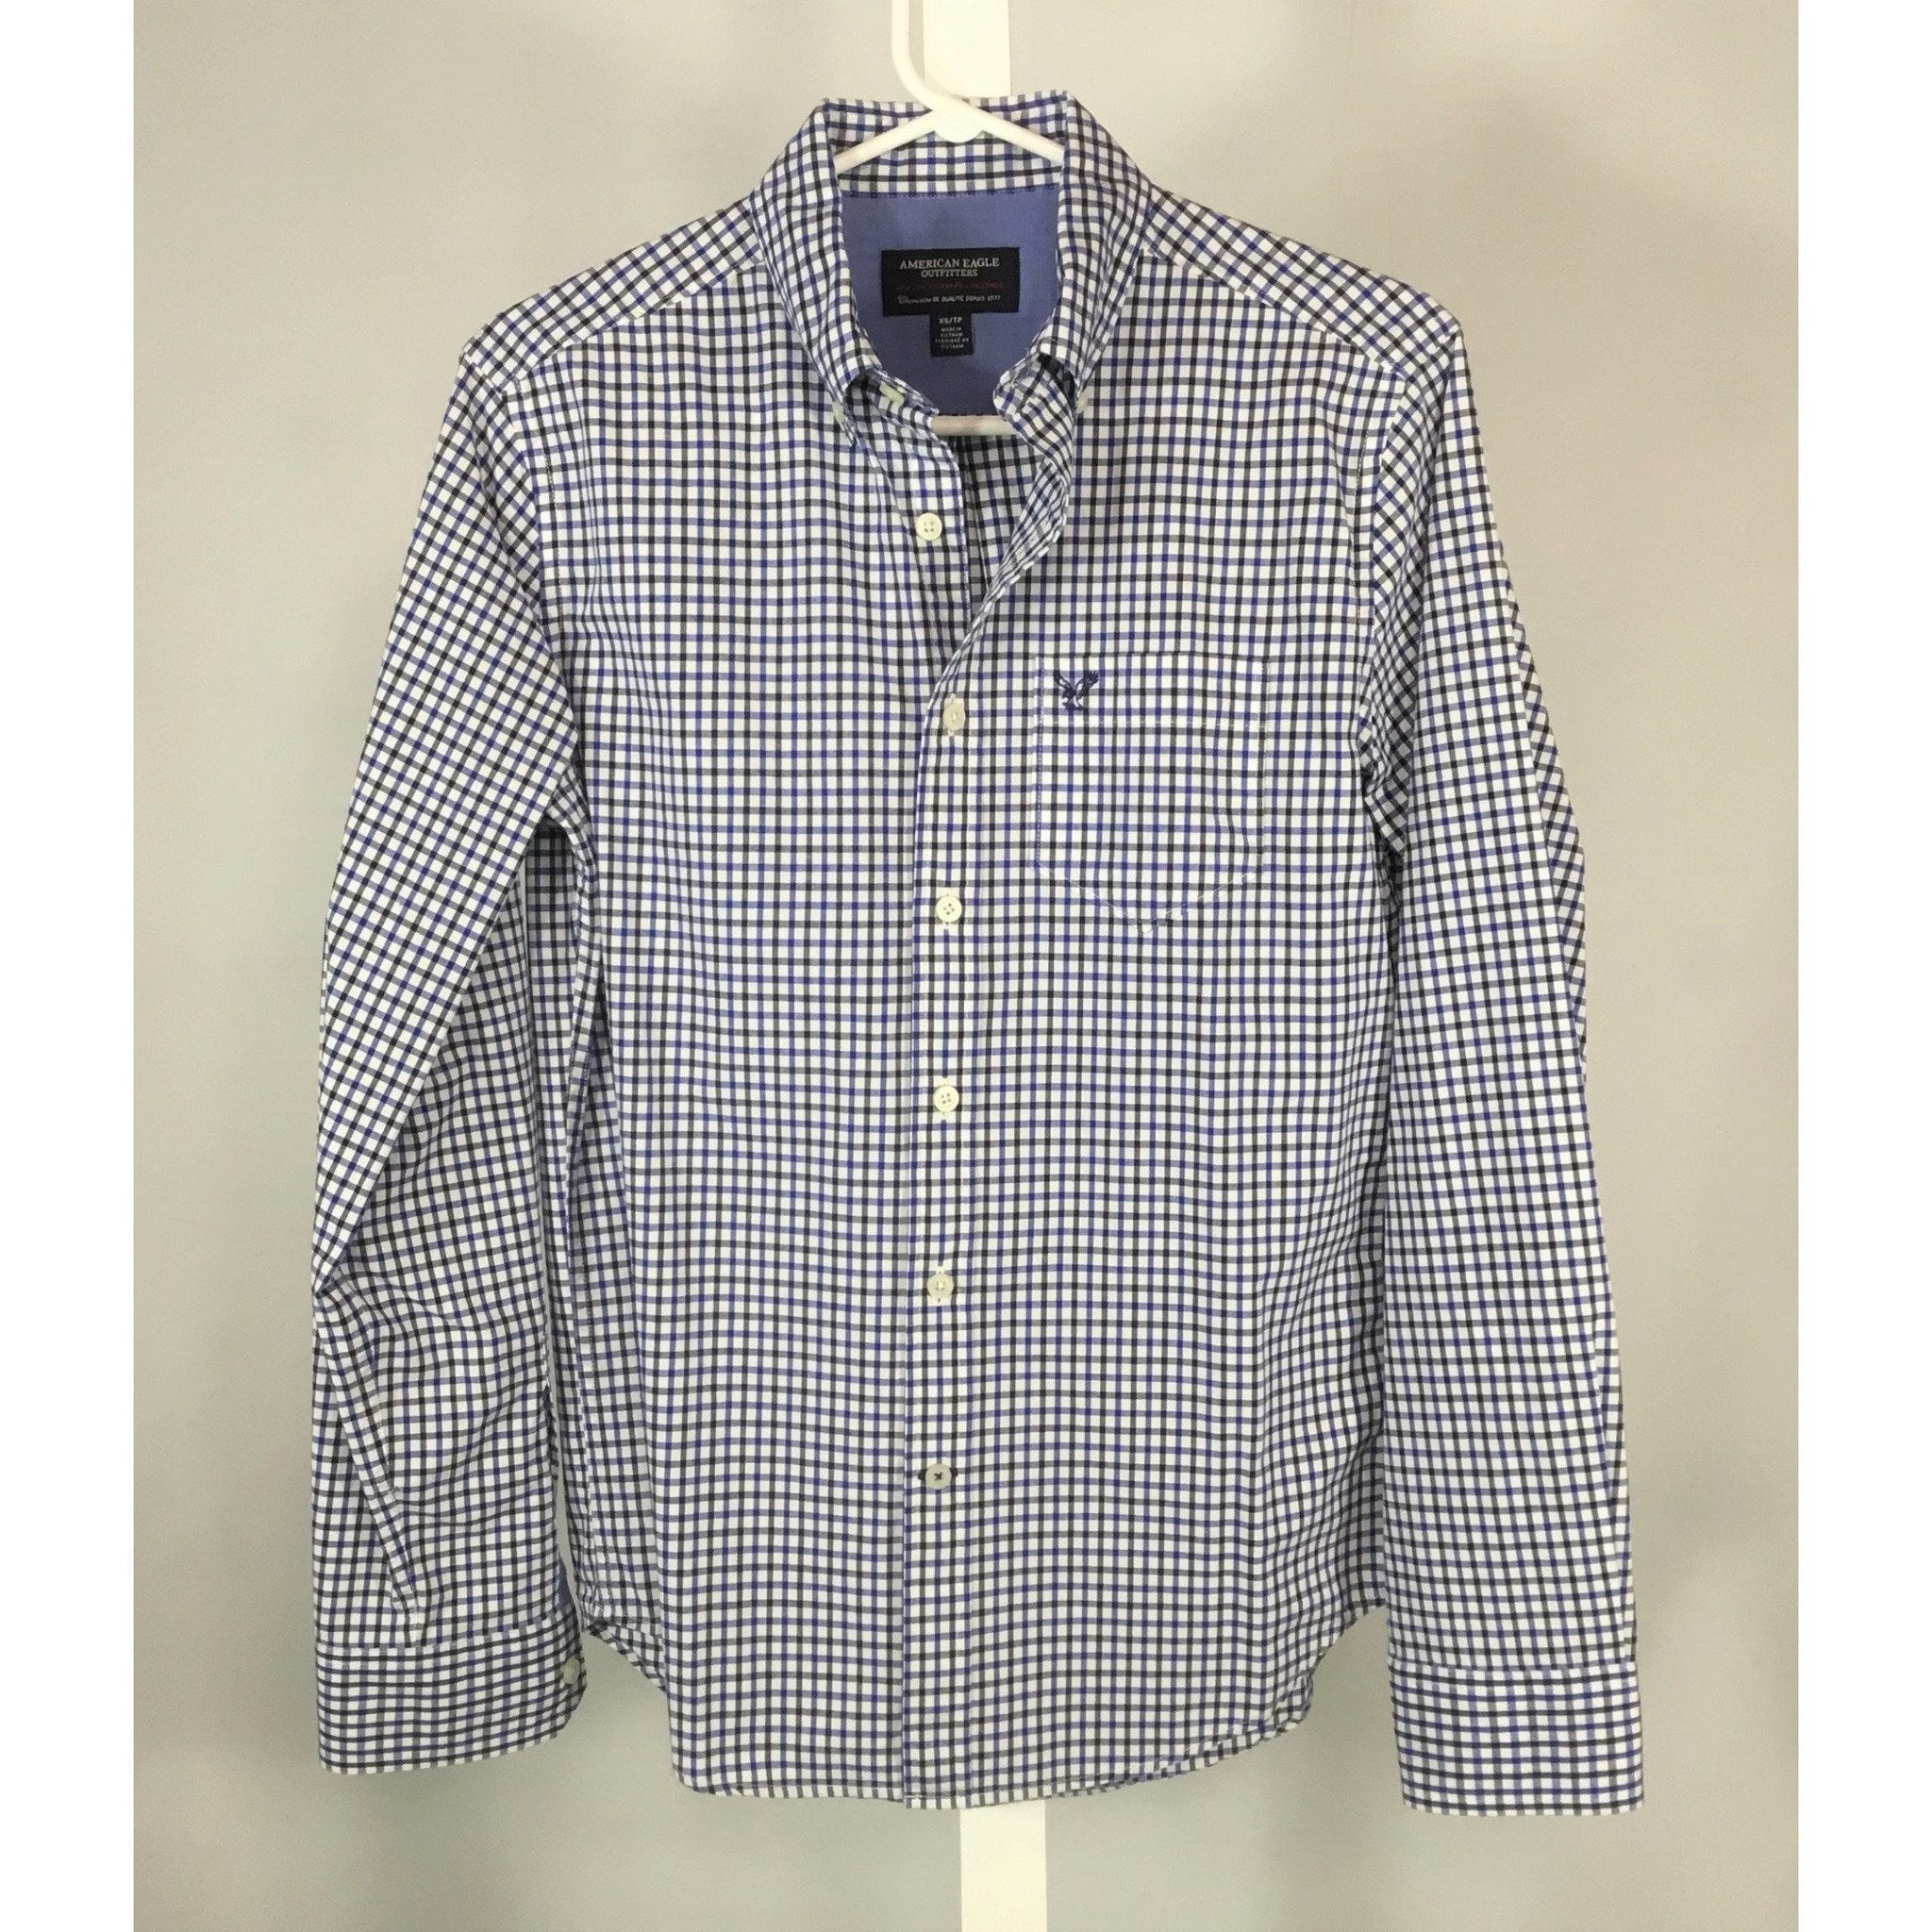 American Eagle check shirt front view